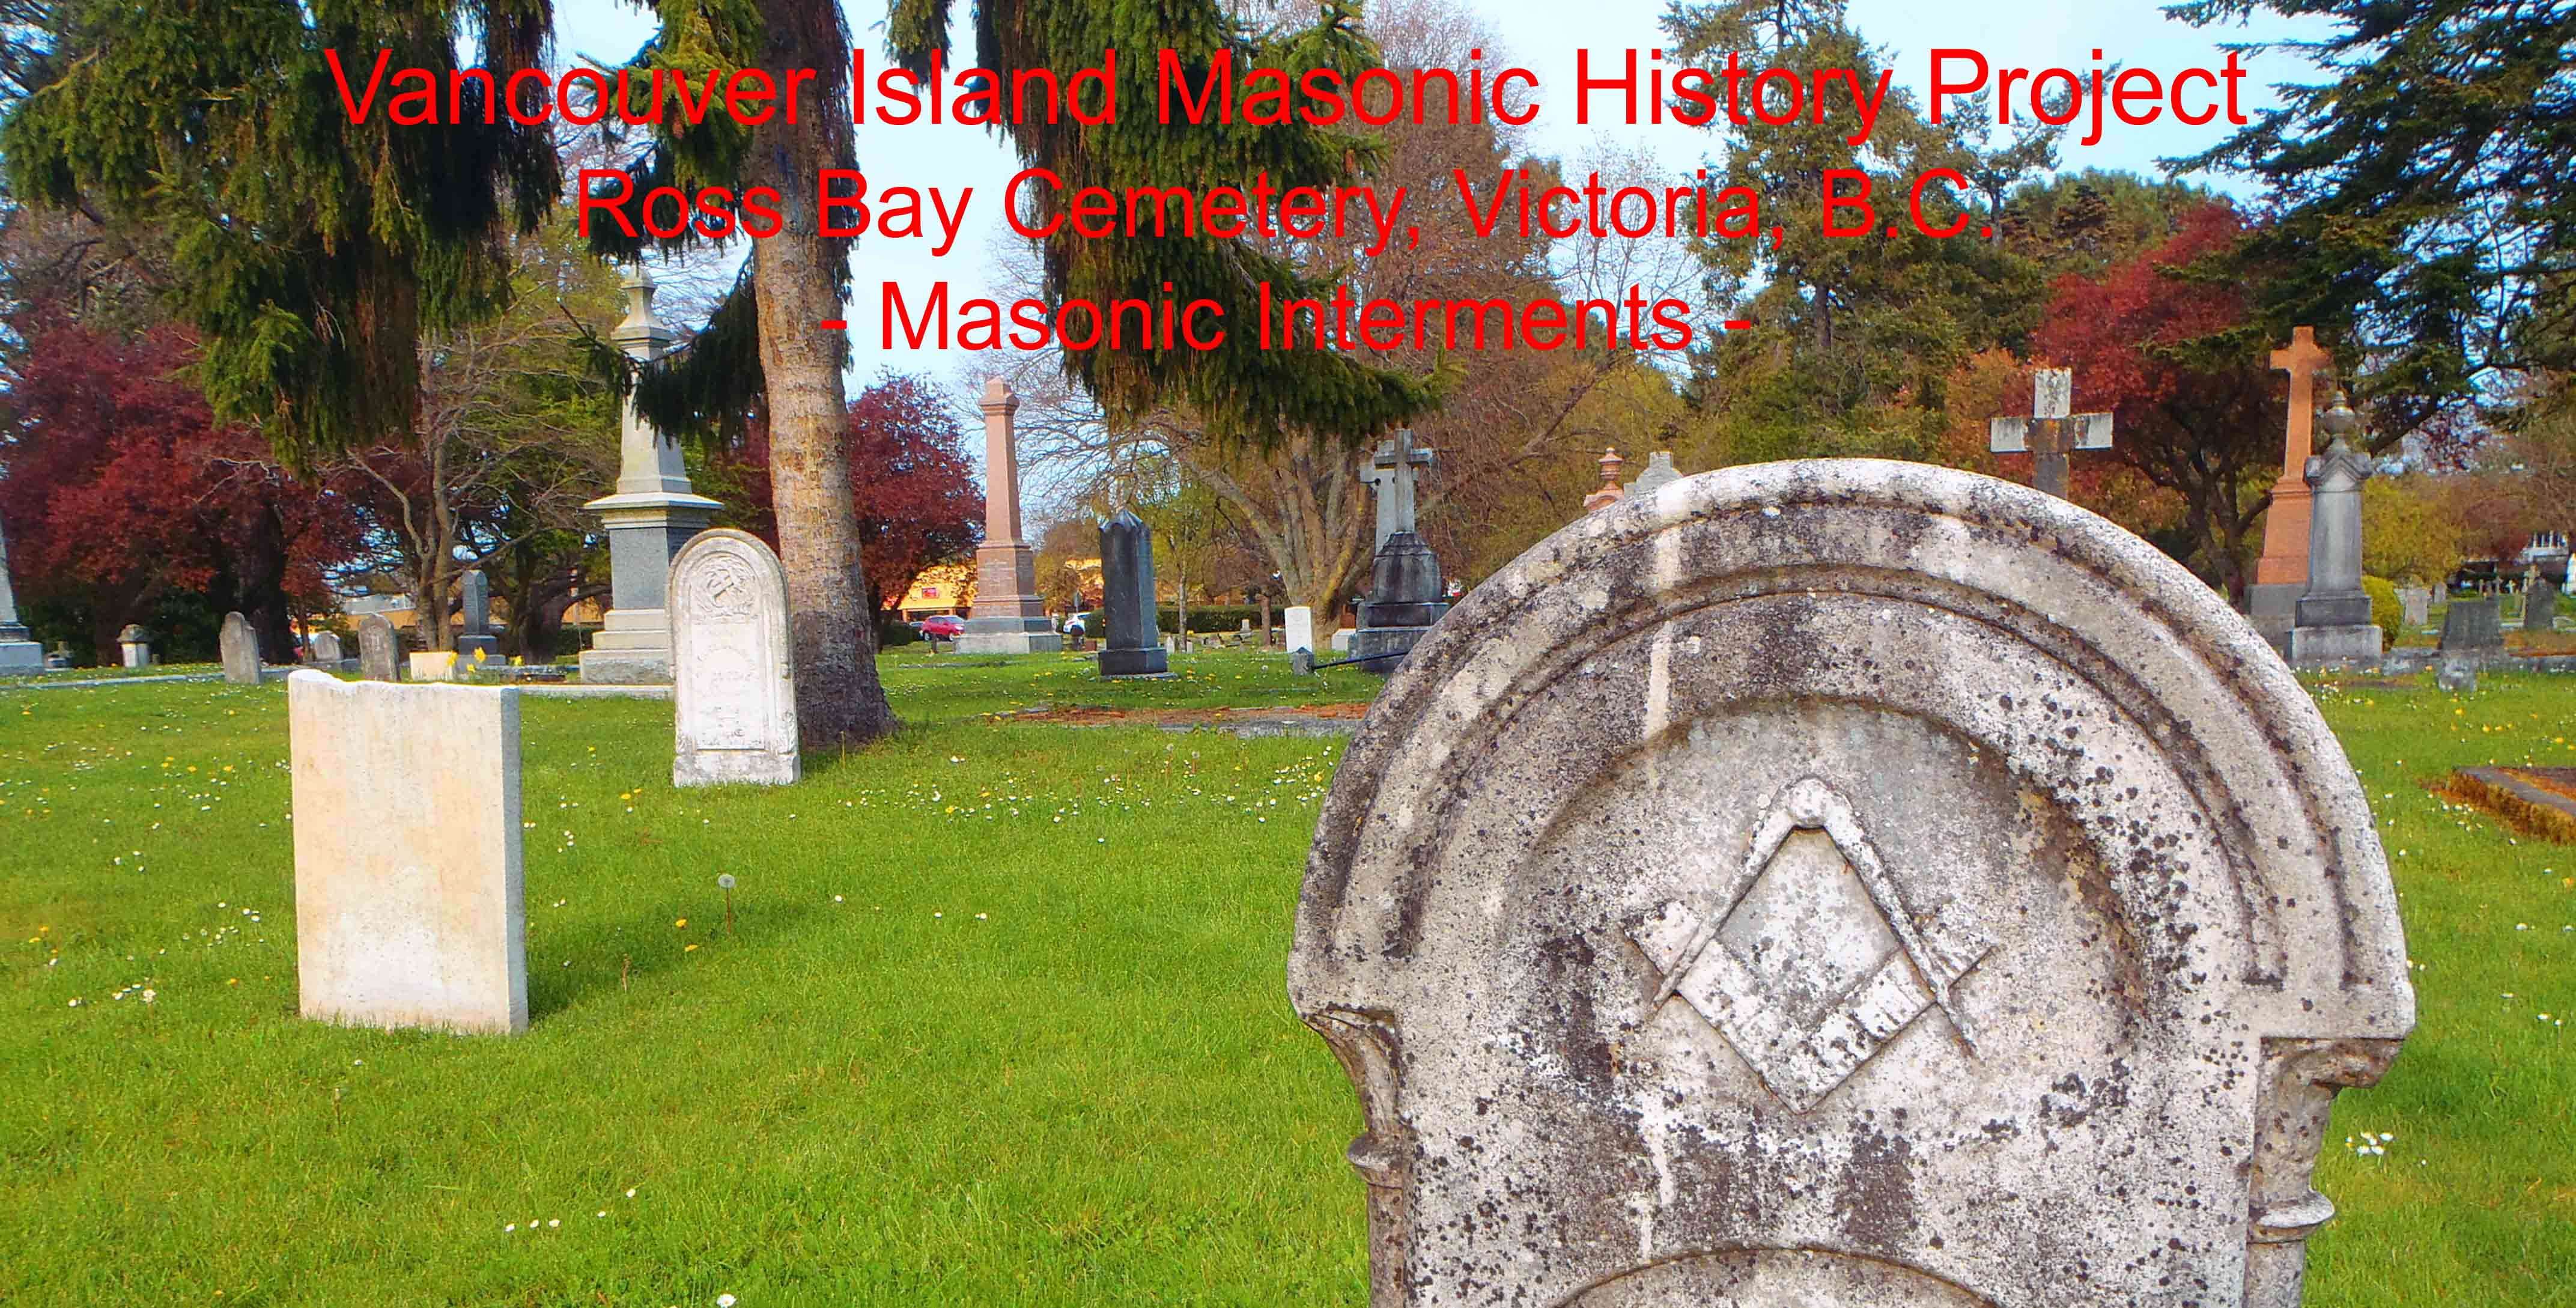 Ross Bay Cemetery Masonic Interments